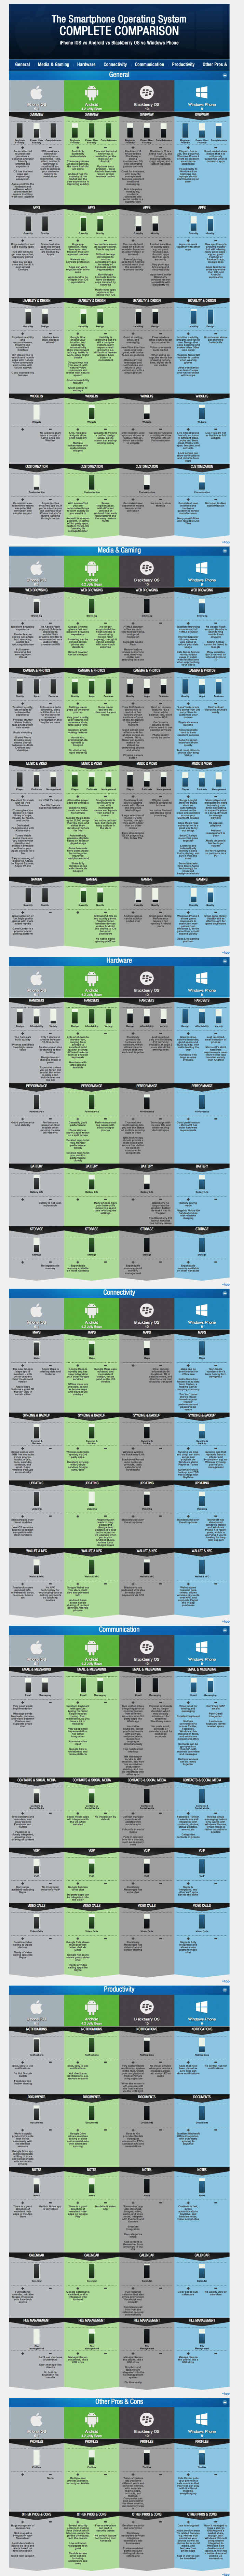 Comparison of Mobile Operating Systems. You may need to use the translate option